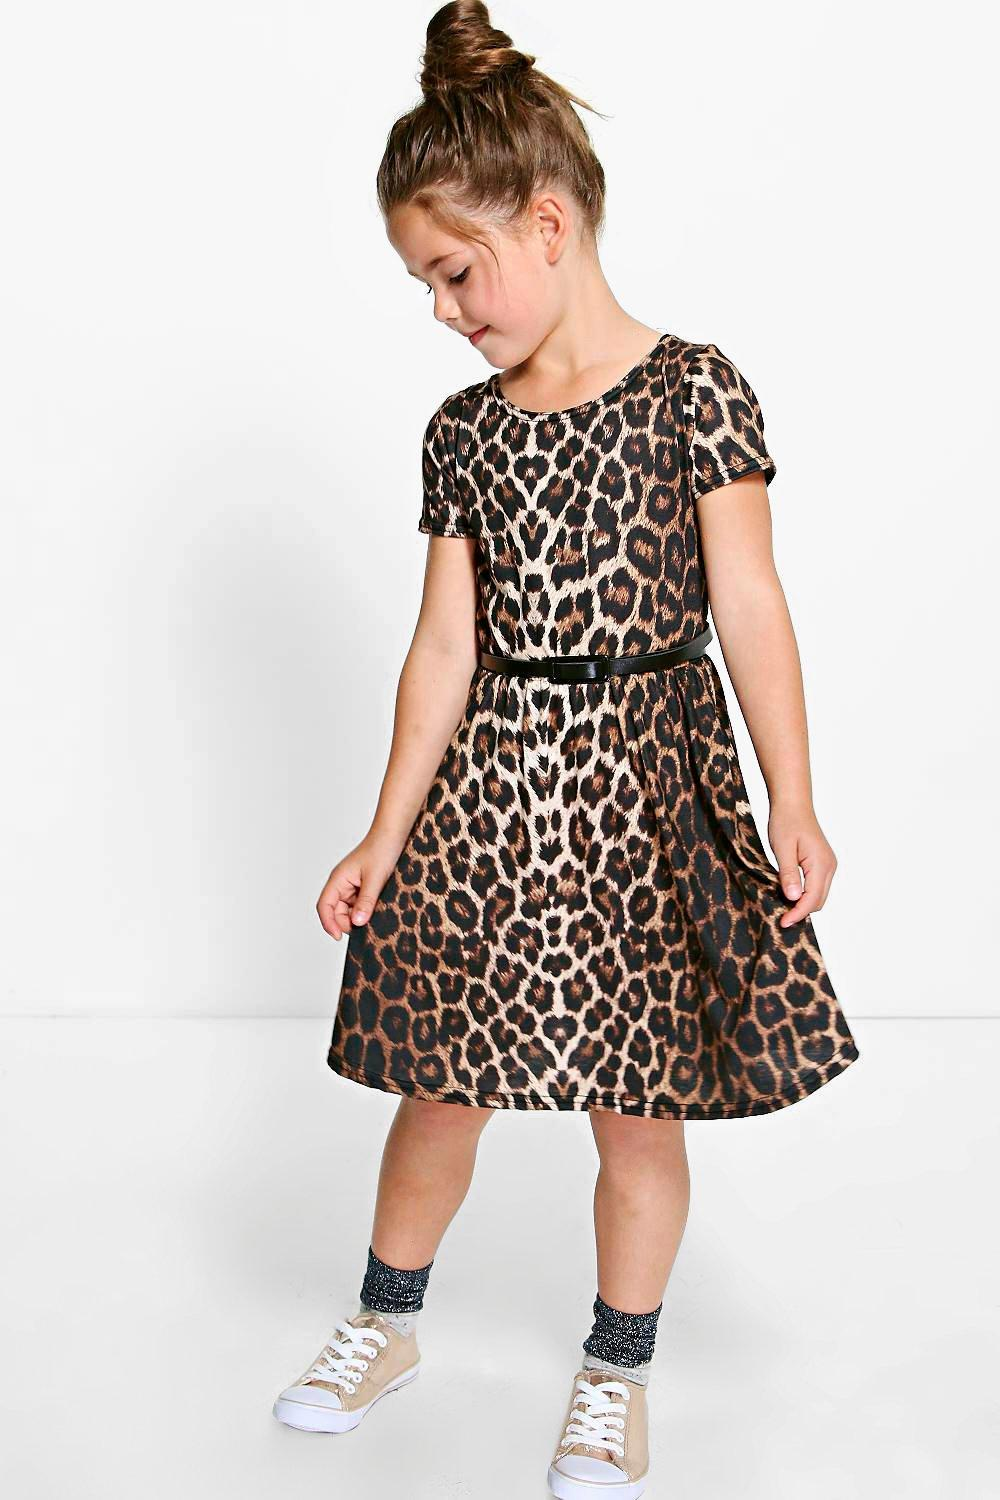 52f5c307e46a Womens Girls Leopard Print Belted Skater Dress. Hover to zoom